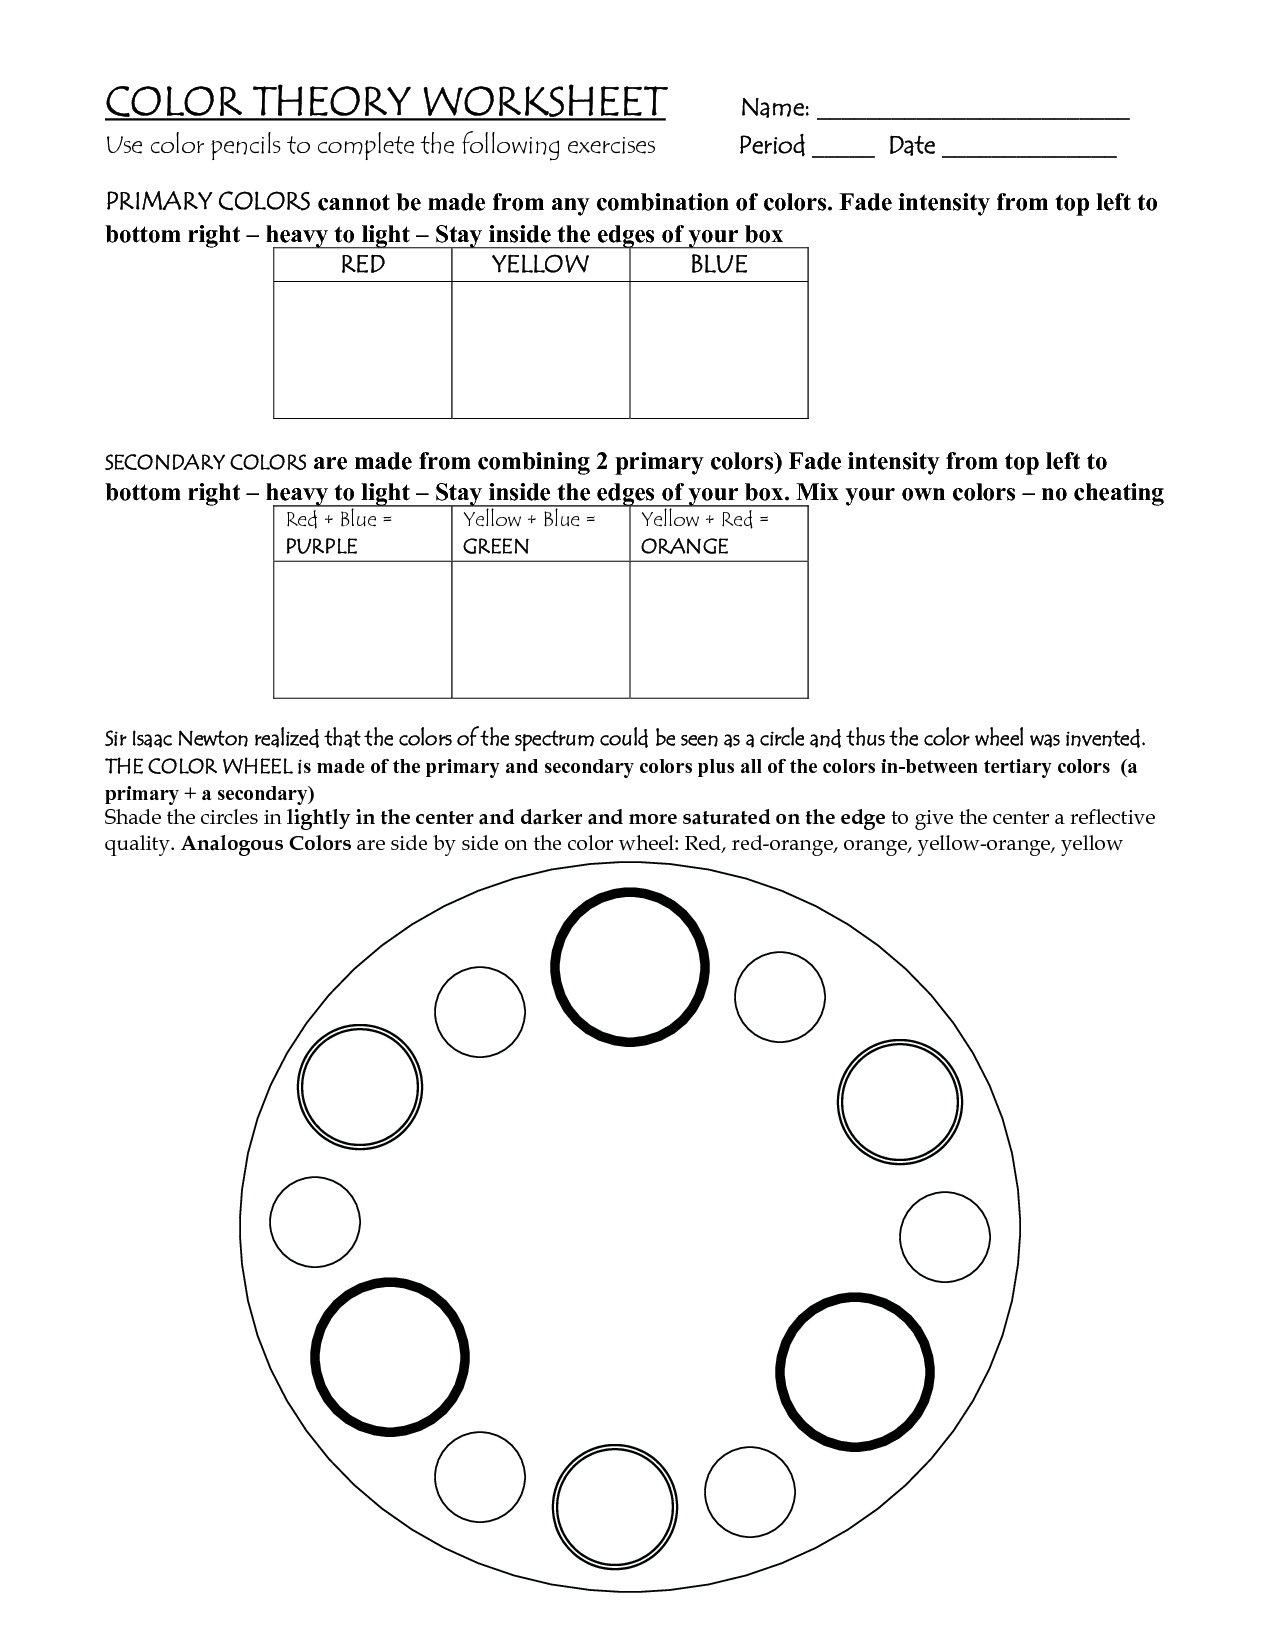 Color Theory Lesson Plans COLOR THEORY WORKSHEET Name